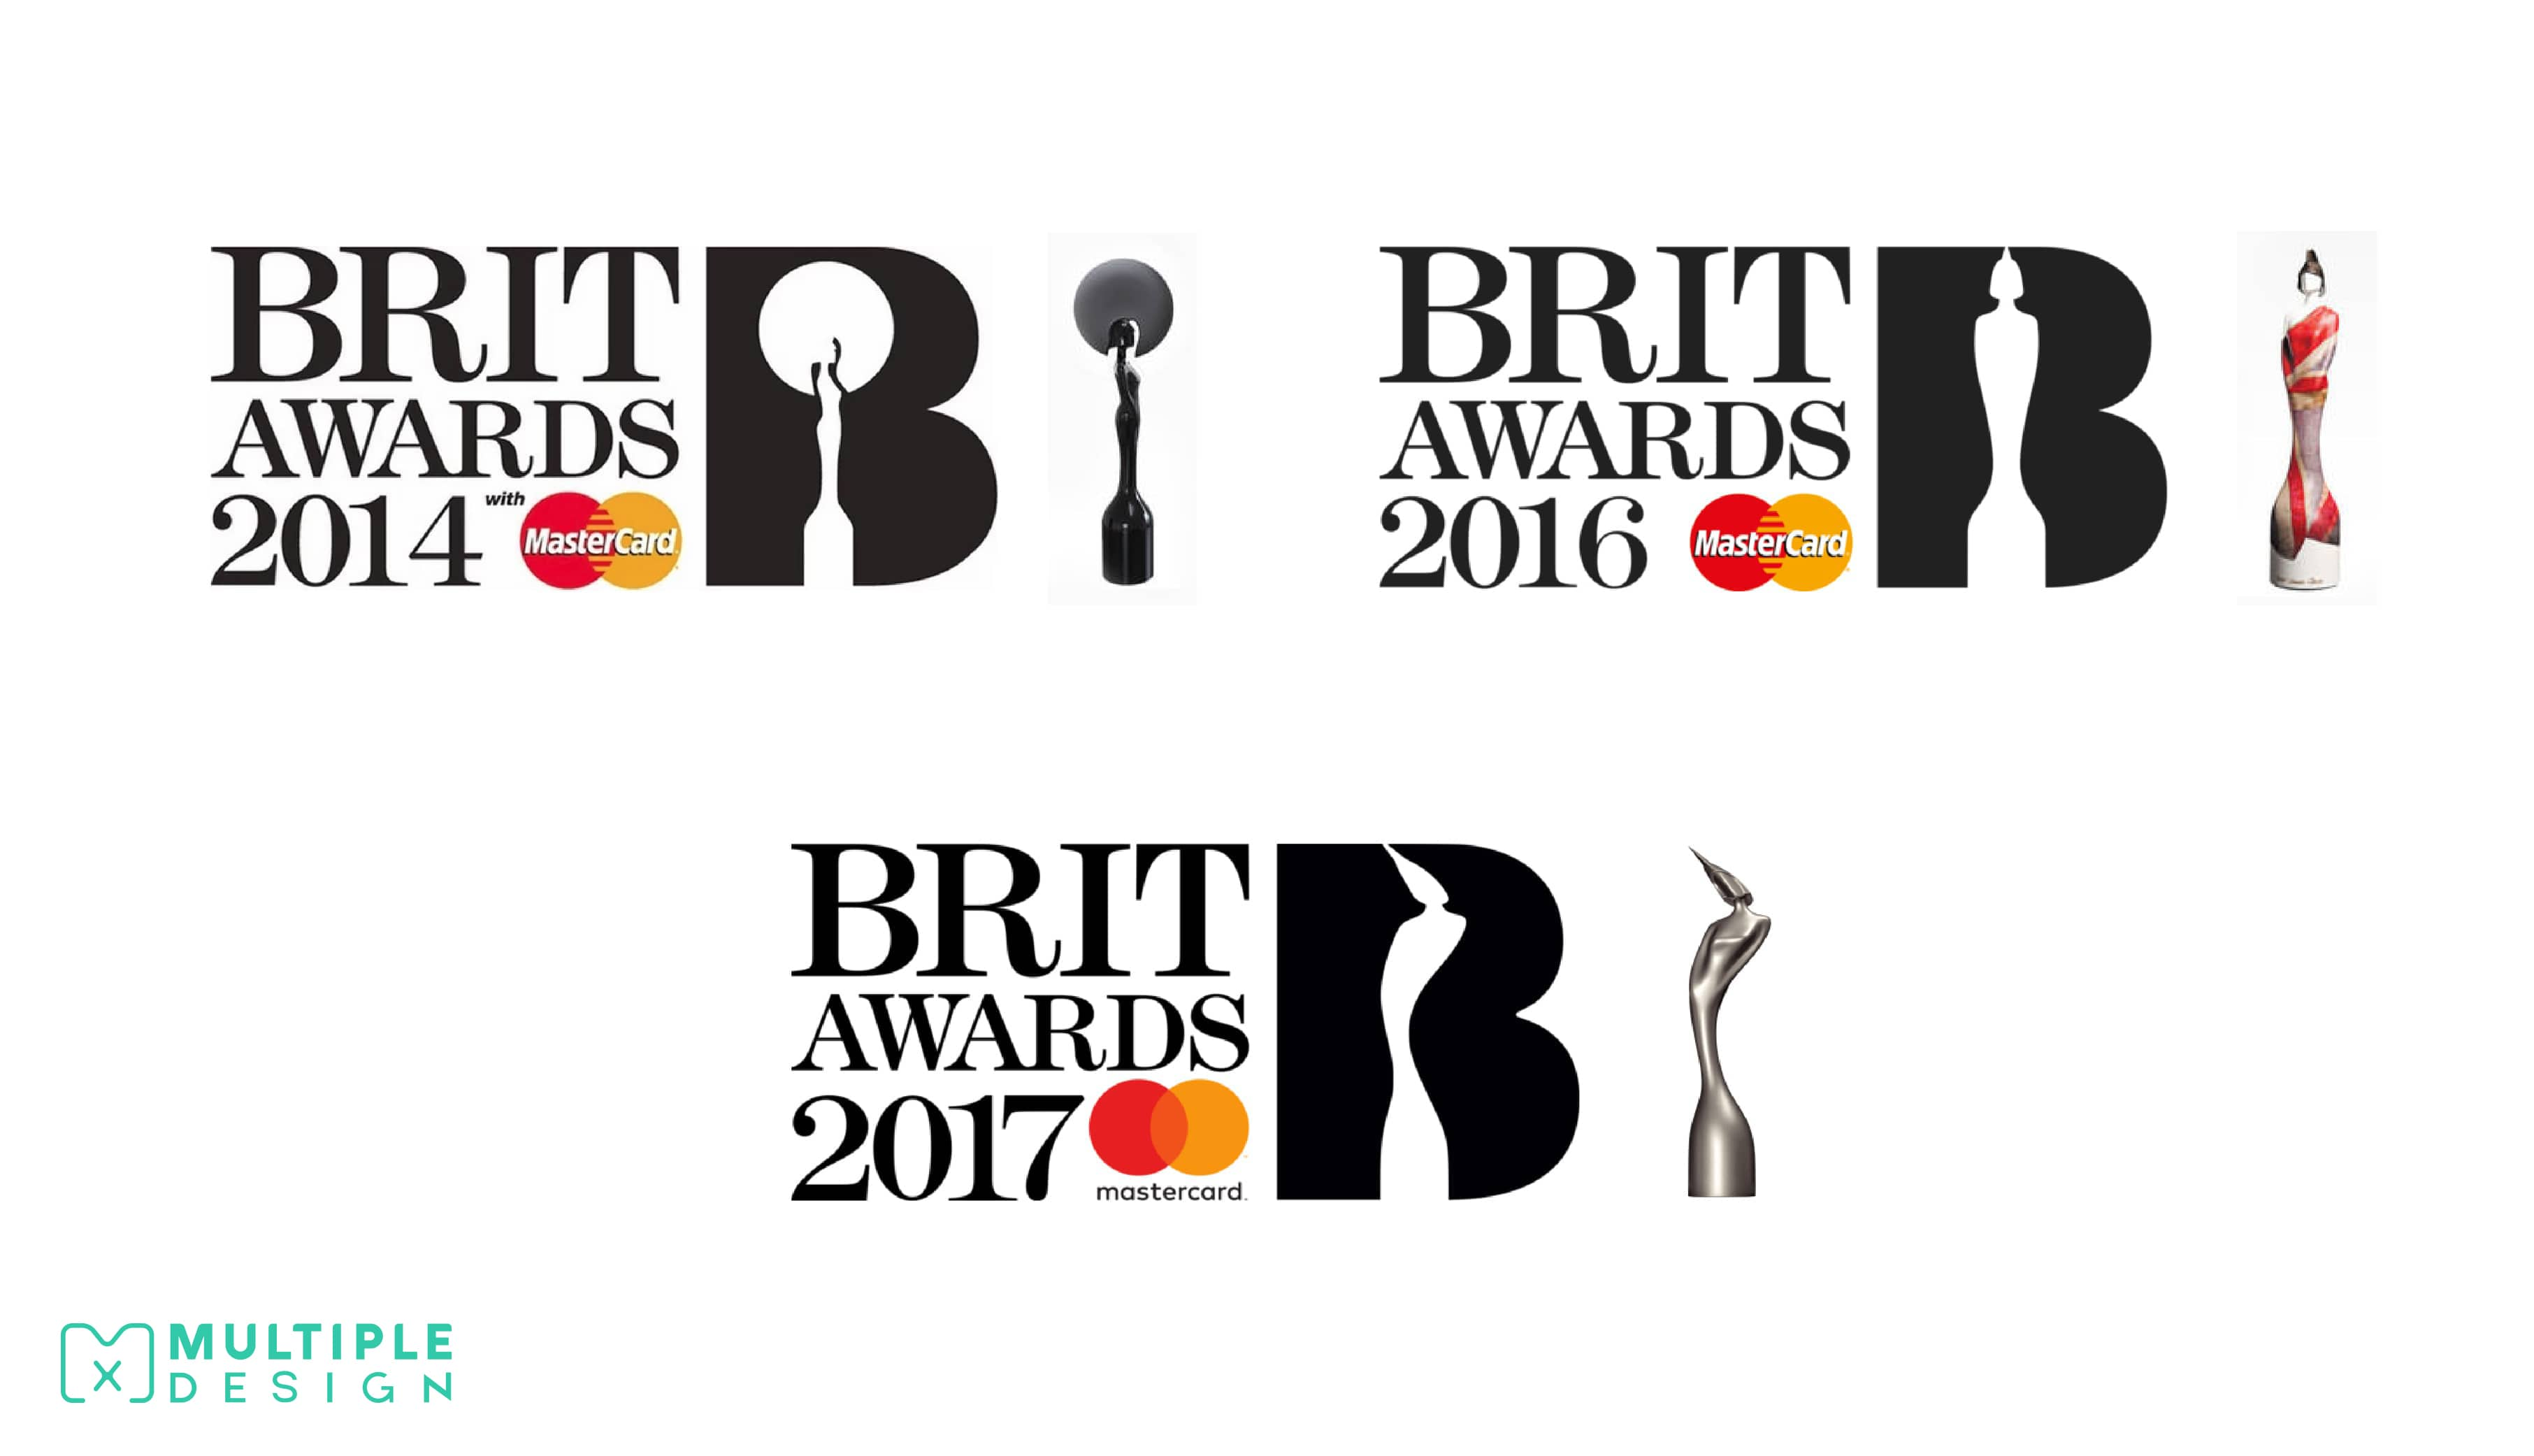 BRIT Awards, logo, changes every year, britannia